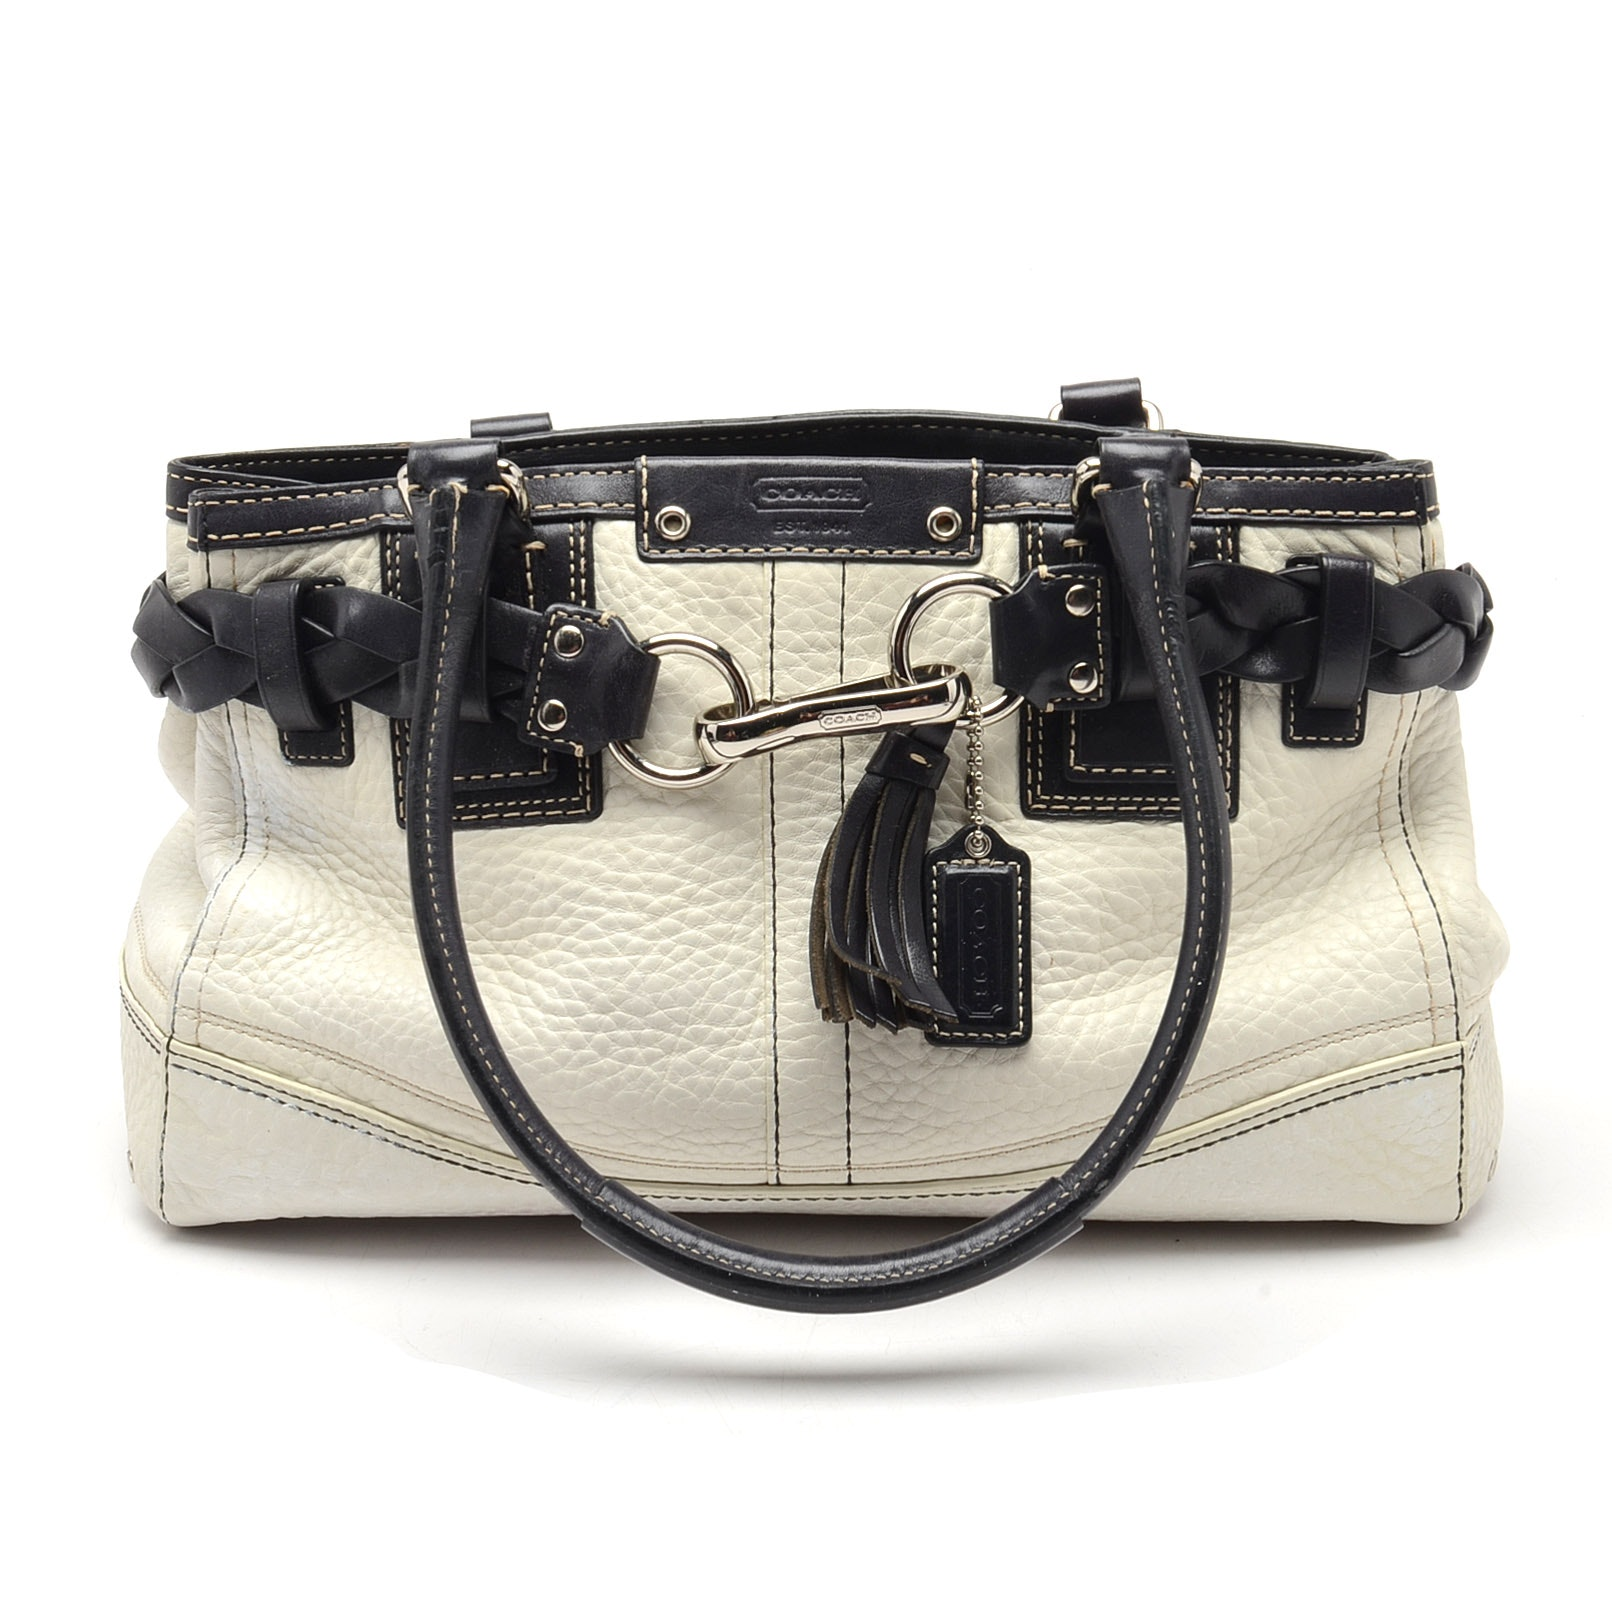 Coach Hamptons Ivory and Black Pebbled Leather Satchel Handbags